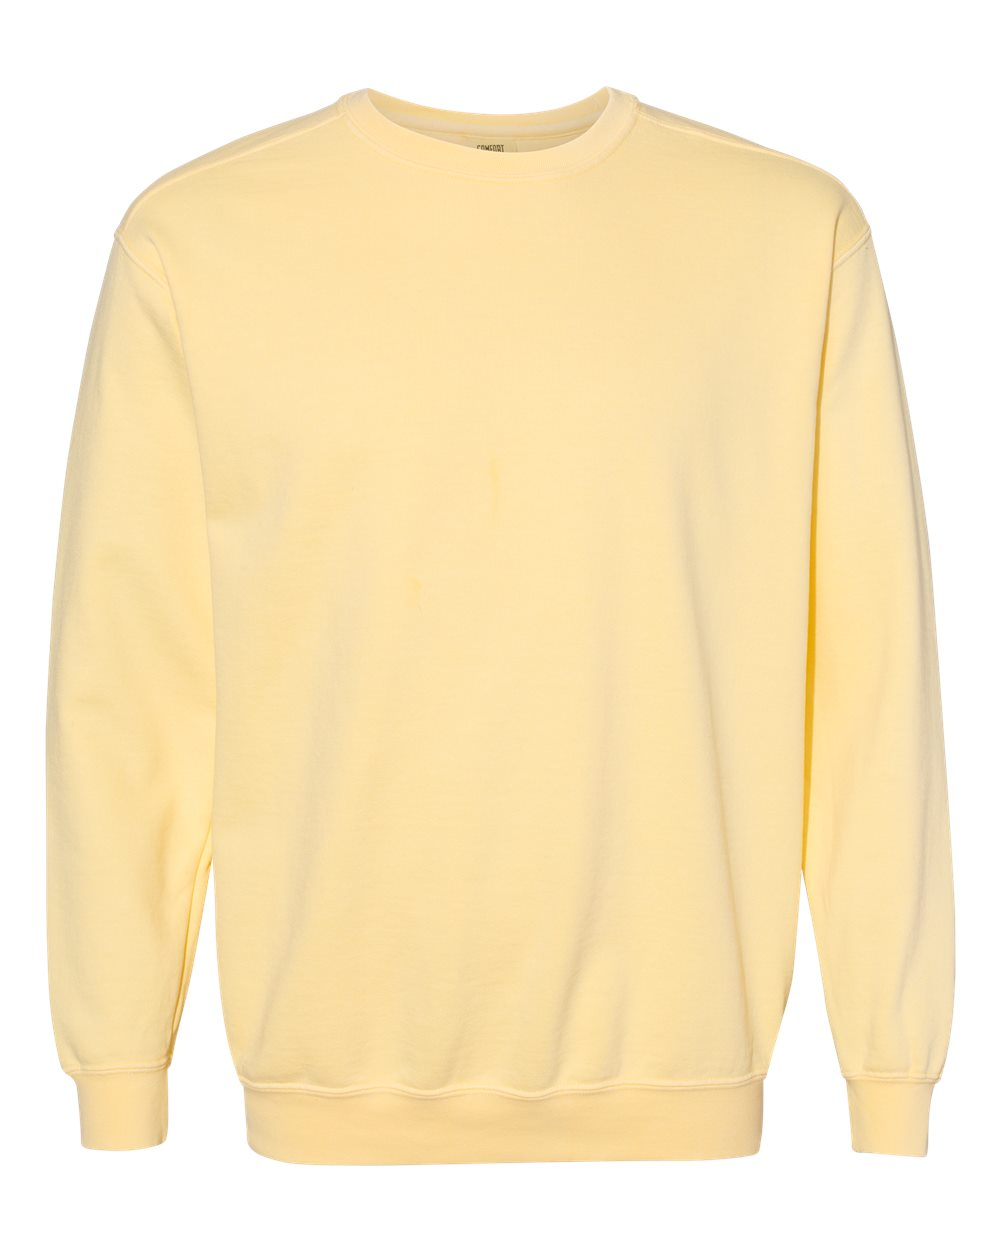 Comfort-Colors-Mens-Garment-Dyed-Ringspun-Crewneck-Sweatshirt-1566-up-to-3XL miniature 15